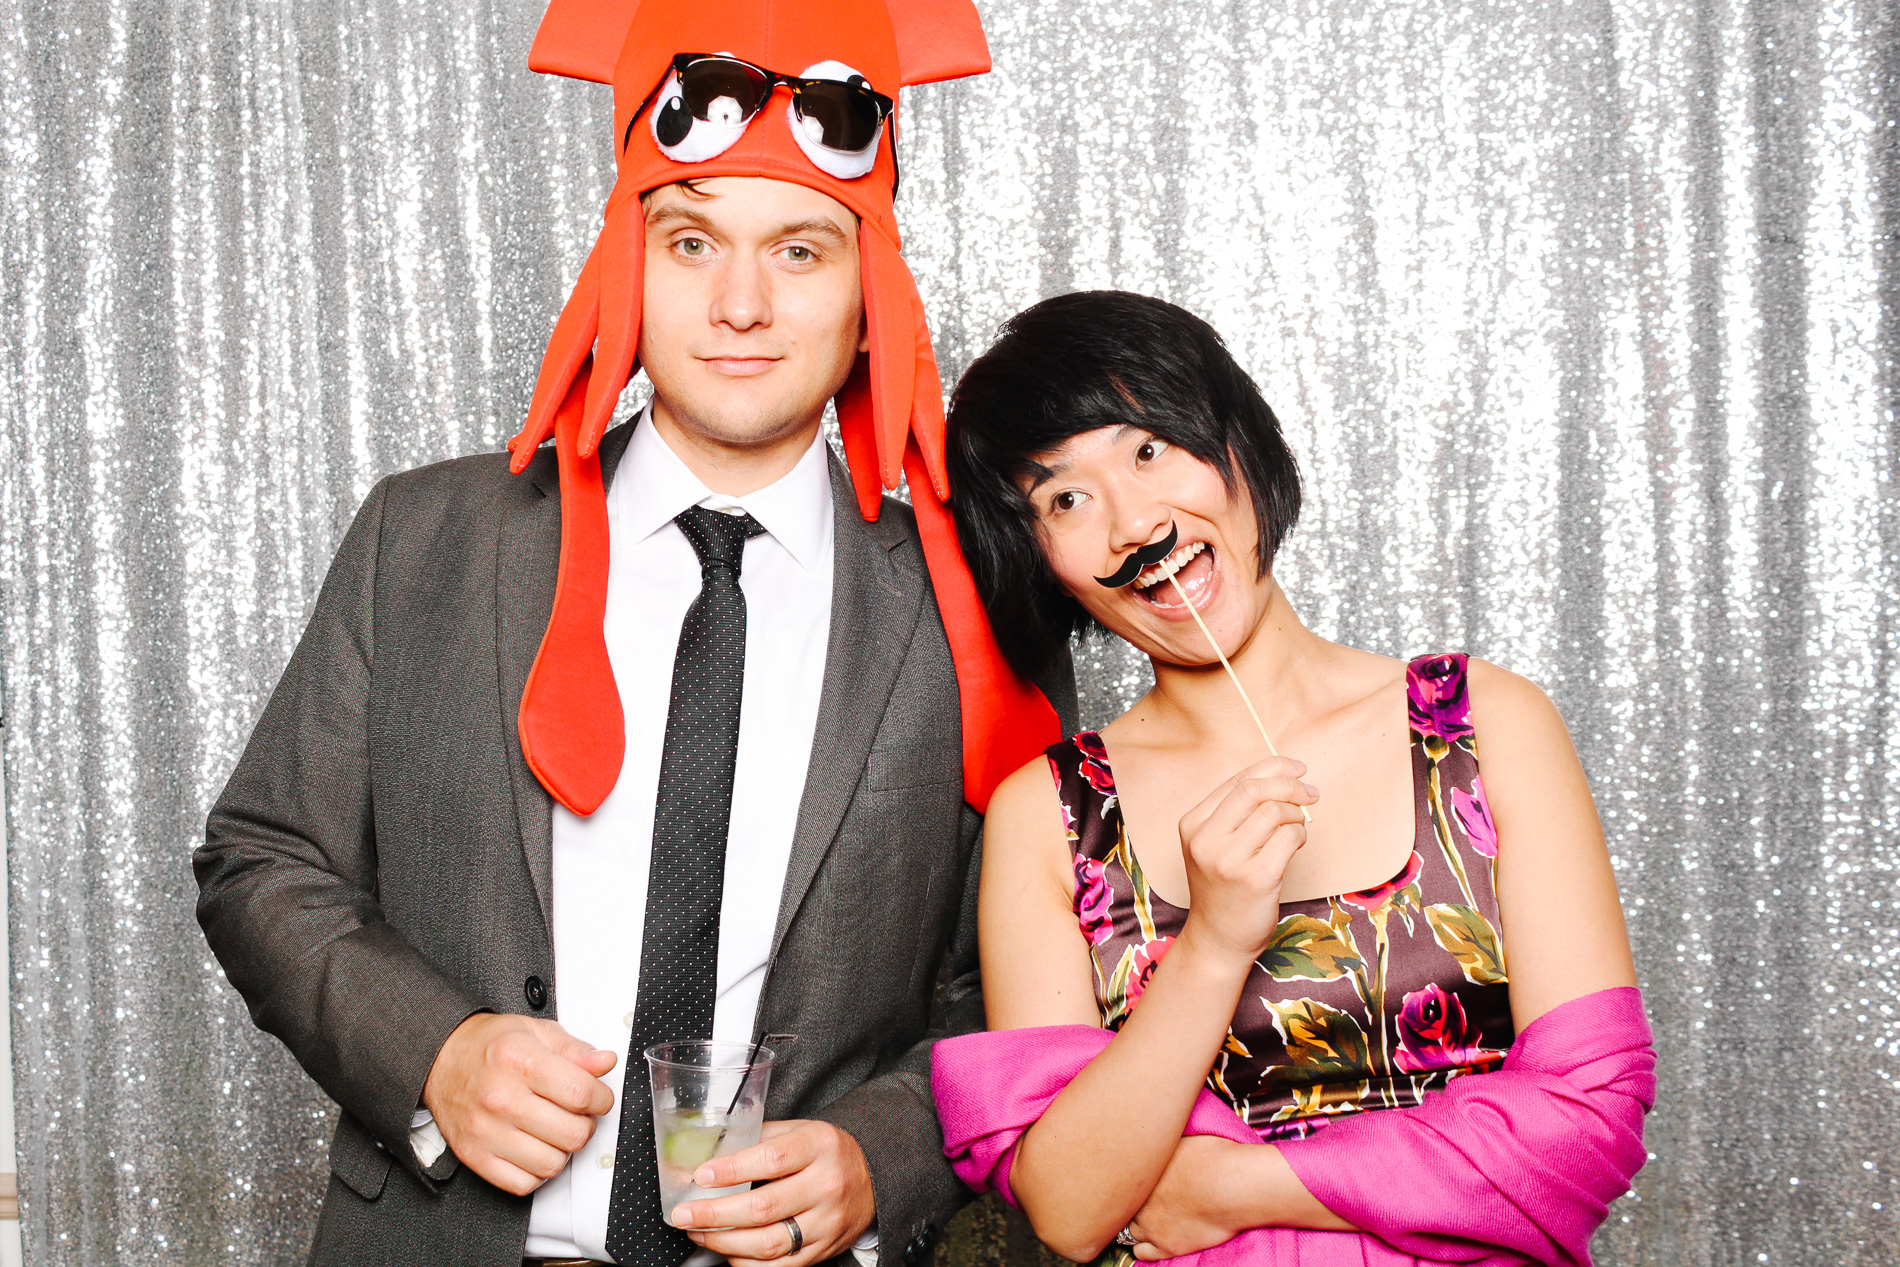 grin-and-bear-booth-photobooth-182446.jpg